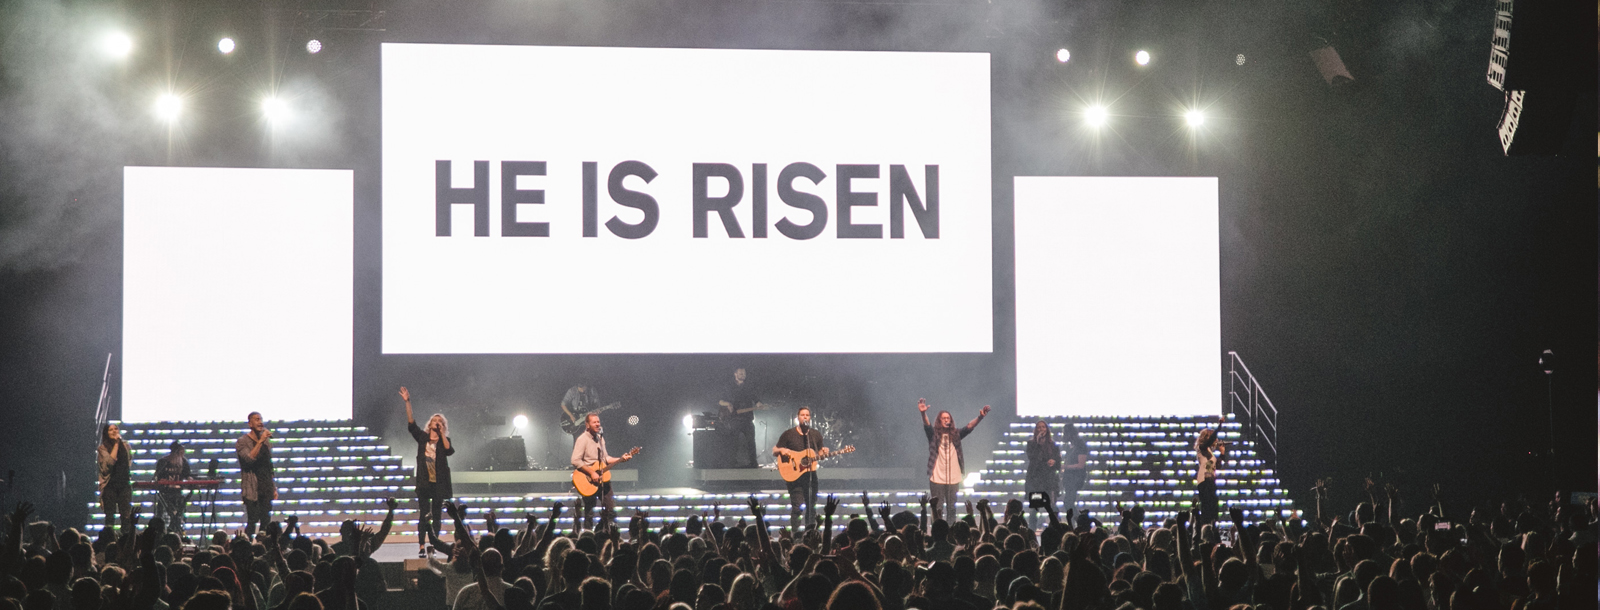 10 Songs to Sing at Easter and Why